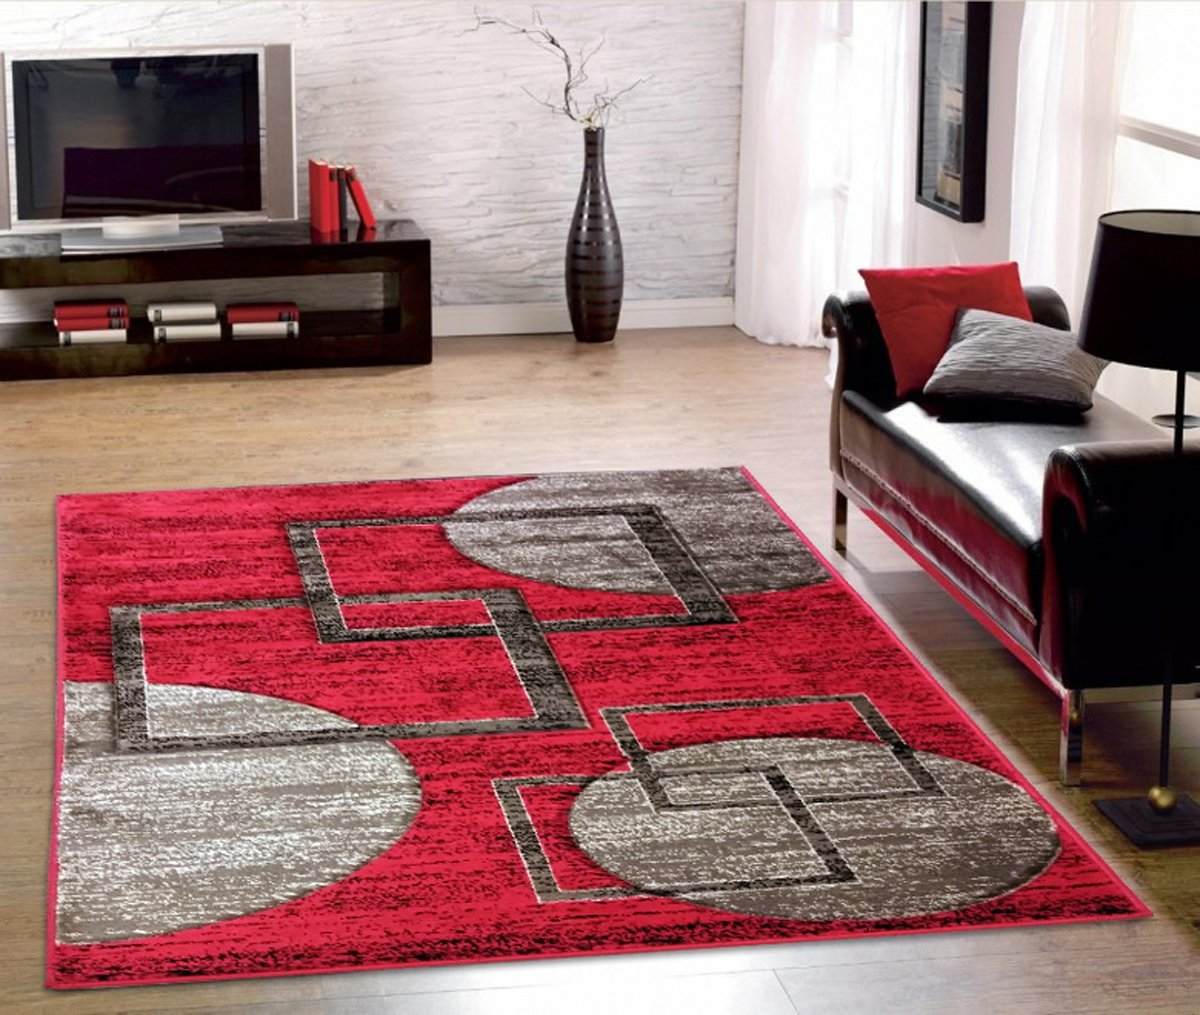 ADGO Atlantic Collection Modern Abstract Geometric Soft Pile Contemporary Carpet Thick Plush Stain Fade Resistant Easy Clean Bedroom Living Dining Room Floor Rug 4 x 6 , AK02 – Red Grey